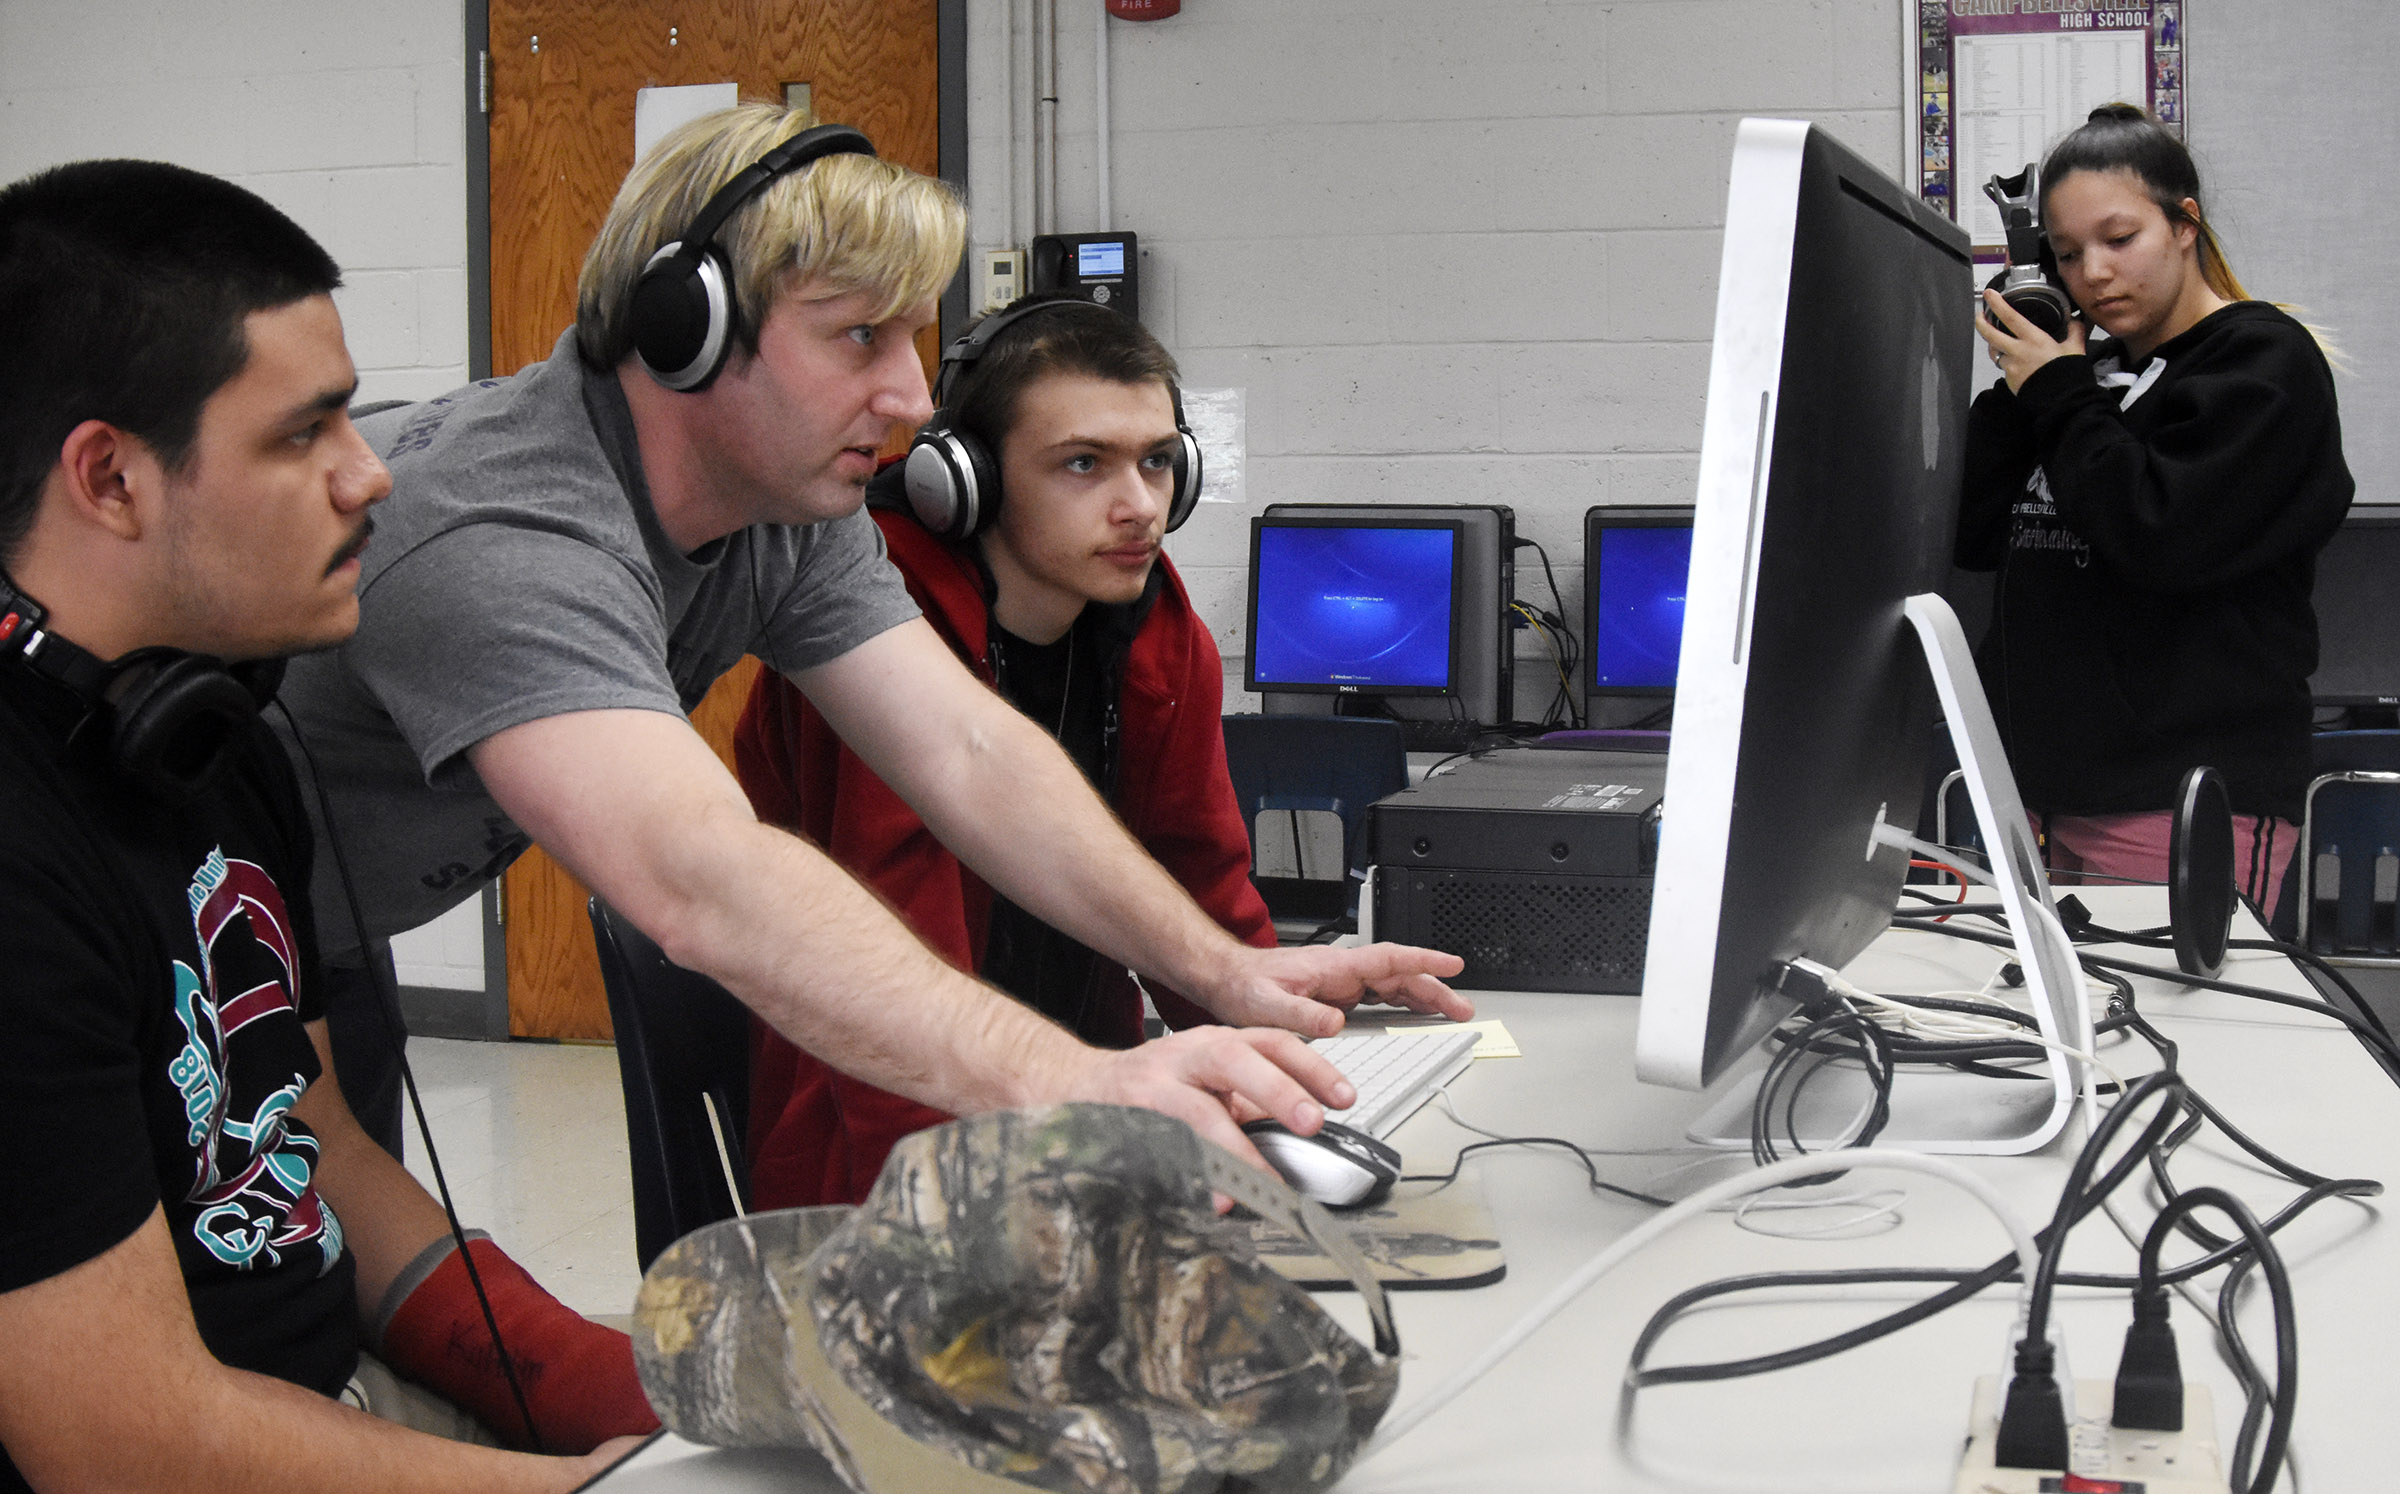 CHS junior Nick Cowan, at left, and sophomore Kris Releford learn to record music with instructional assistant David Williams. At right, freshman Tierra Bridgewater listens to the song she just recorded.